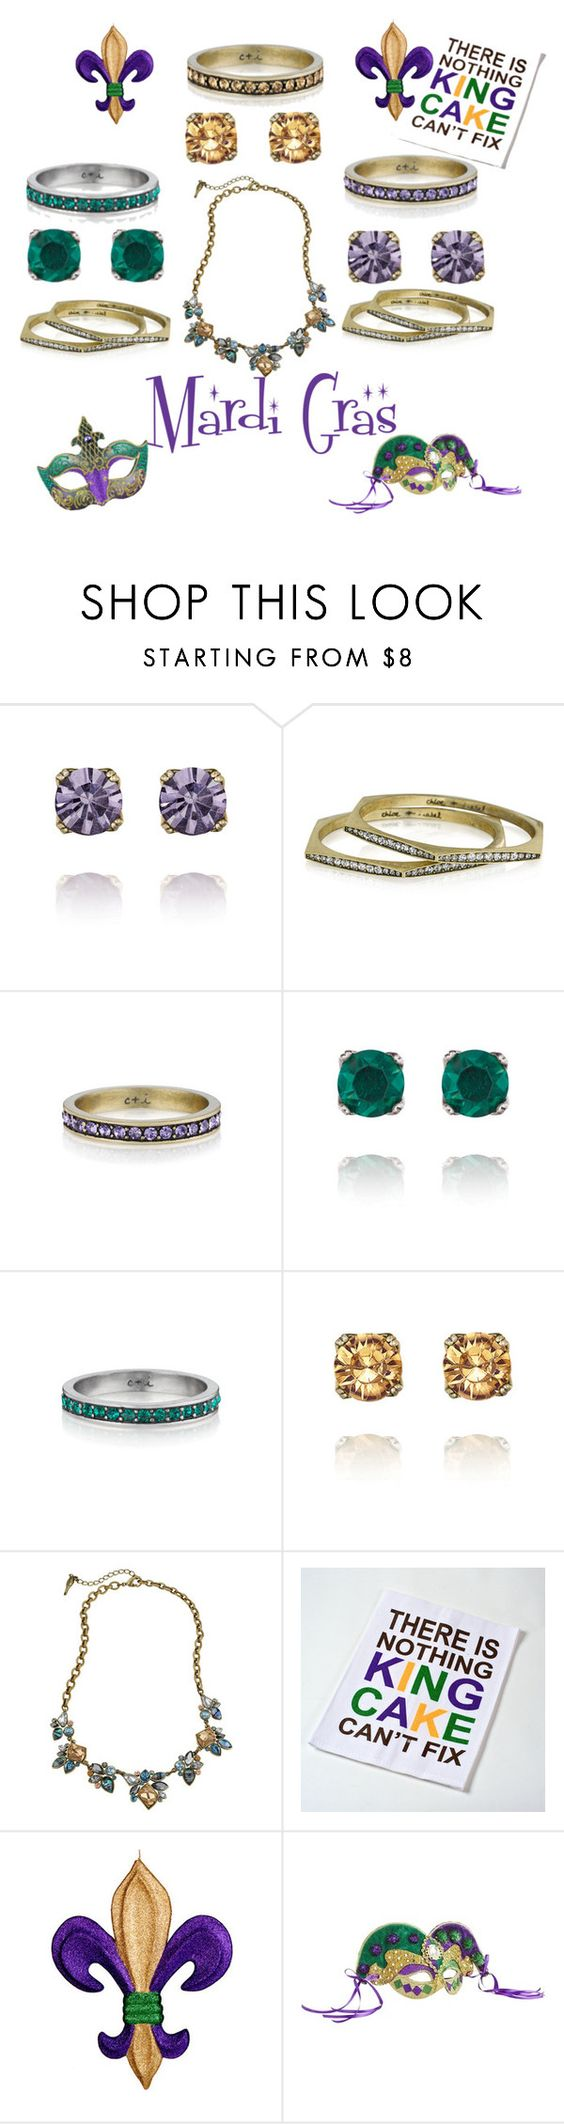 Mardi Gras with Chloe + Isabel by la-guajira on Polyvore. You can Shop all jewelry in my boutique xiomarad.chloeandisabel.com #mardigras #Fattuesday #women